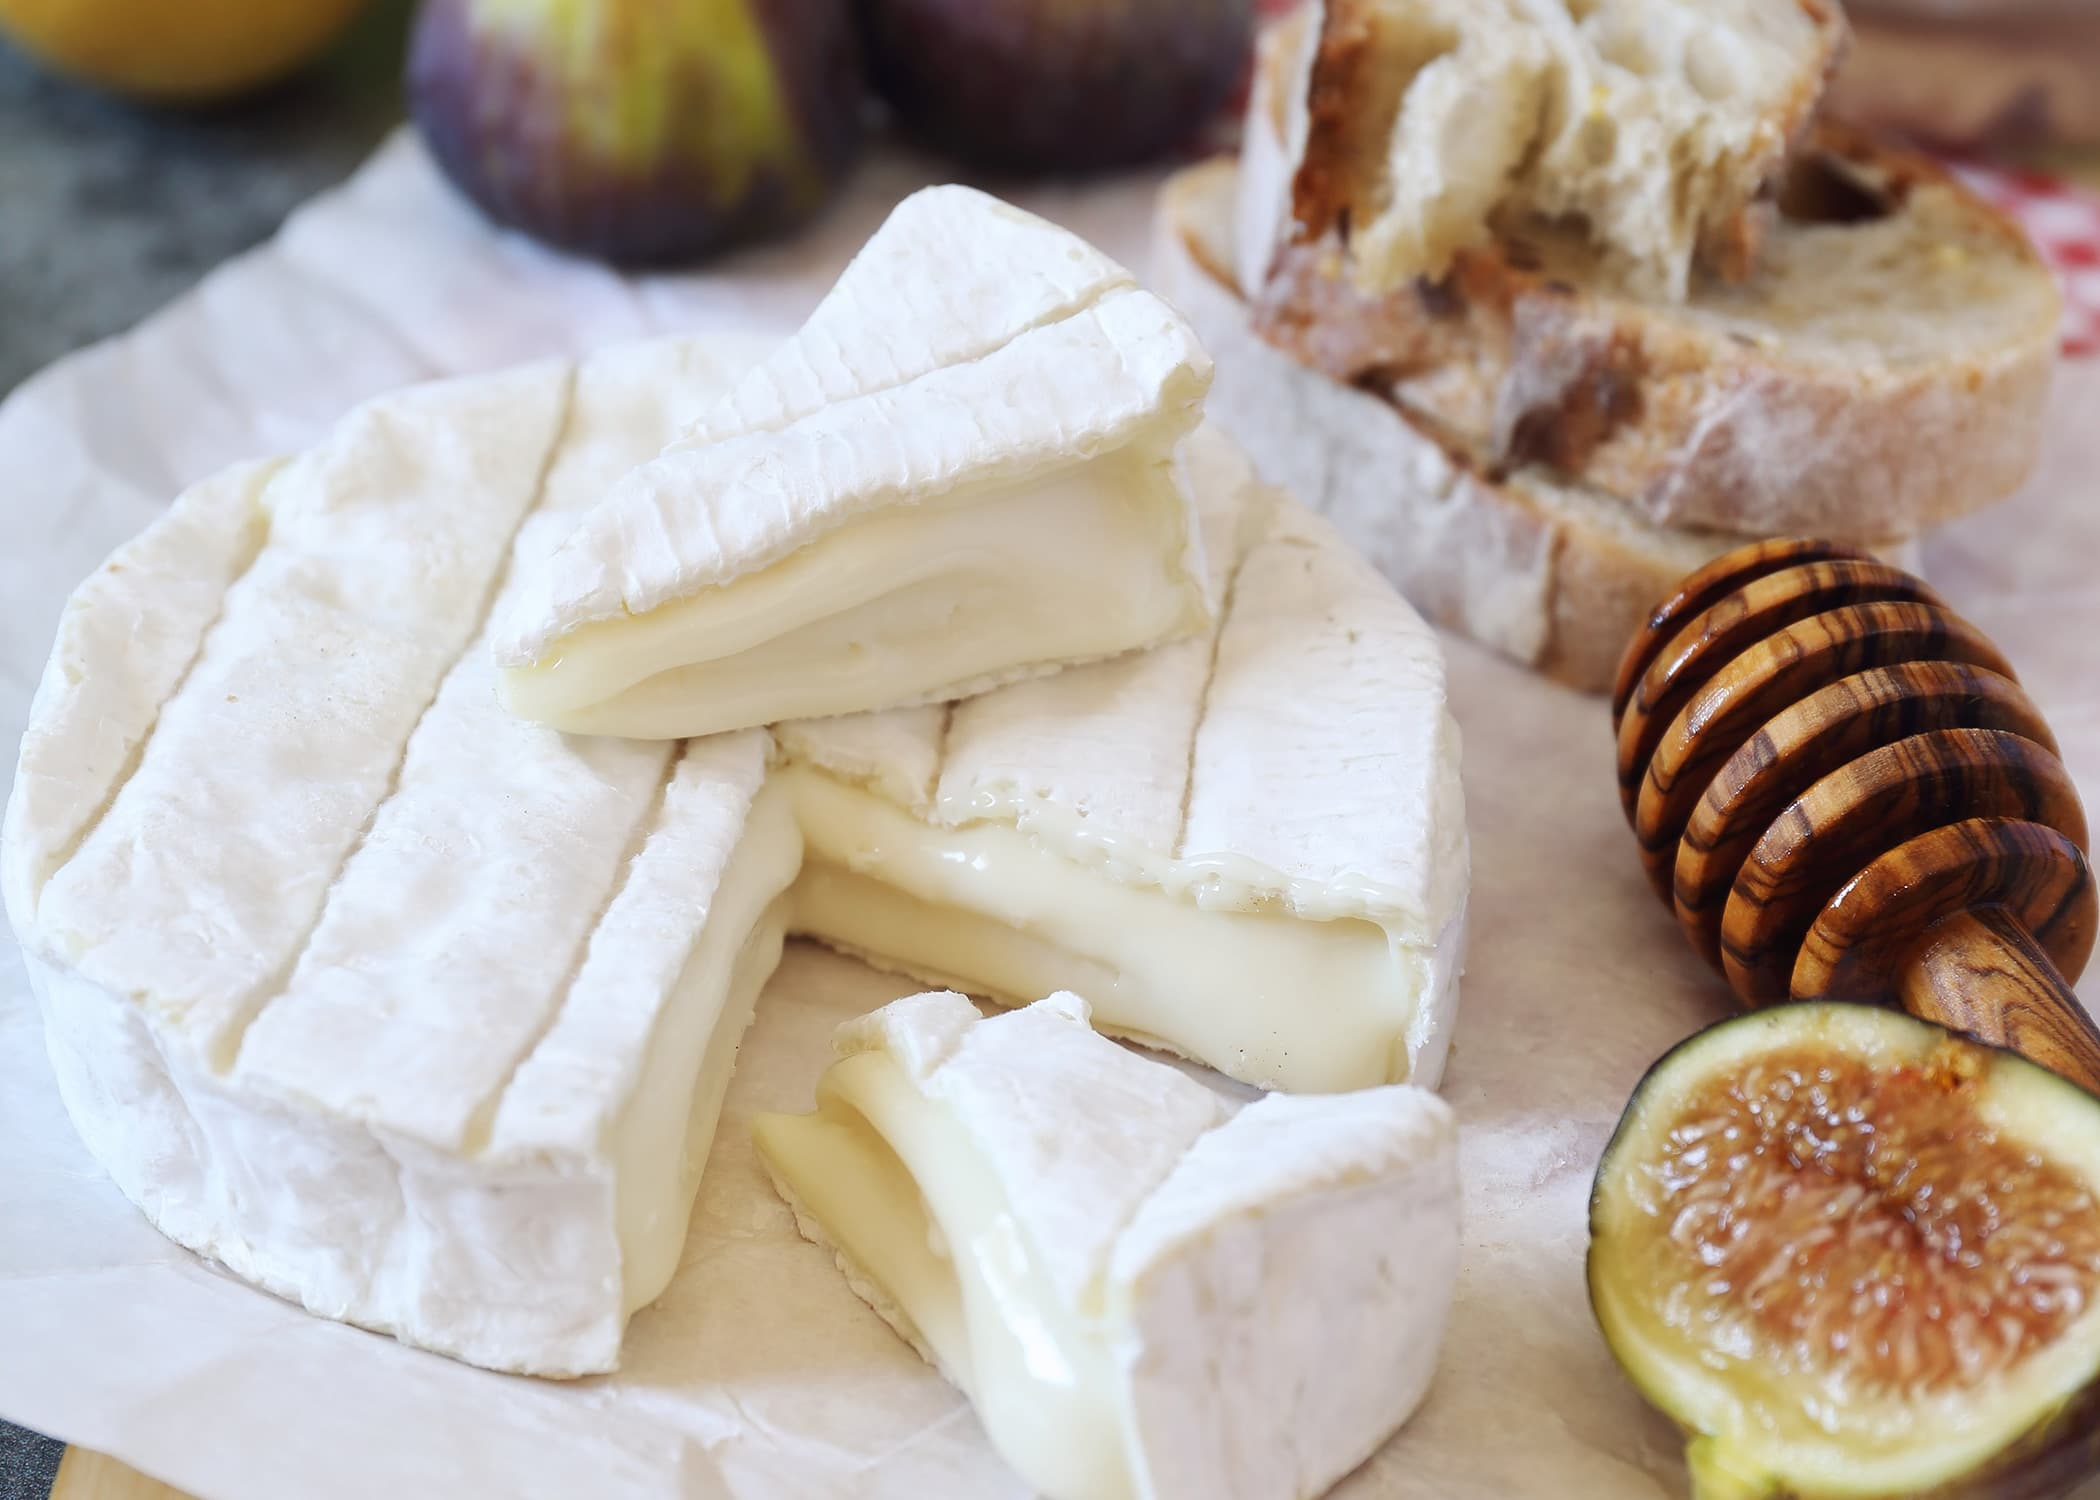 naem-webinar-2018-what-artisinal-goat-cheese-can-tell-us-about-food-safety-700x500